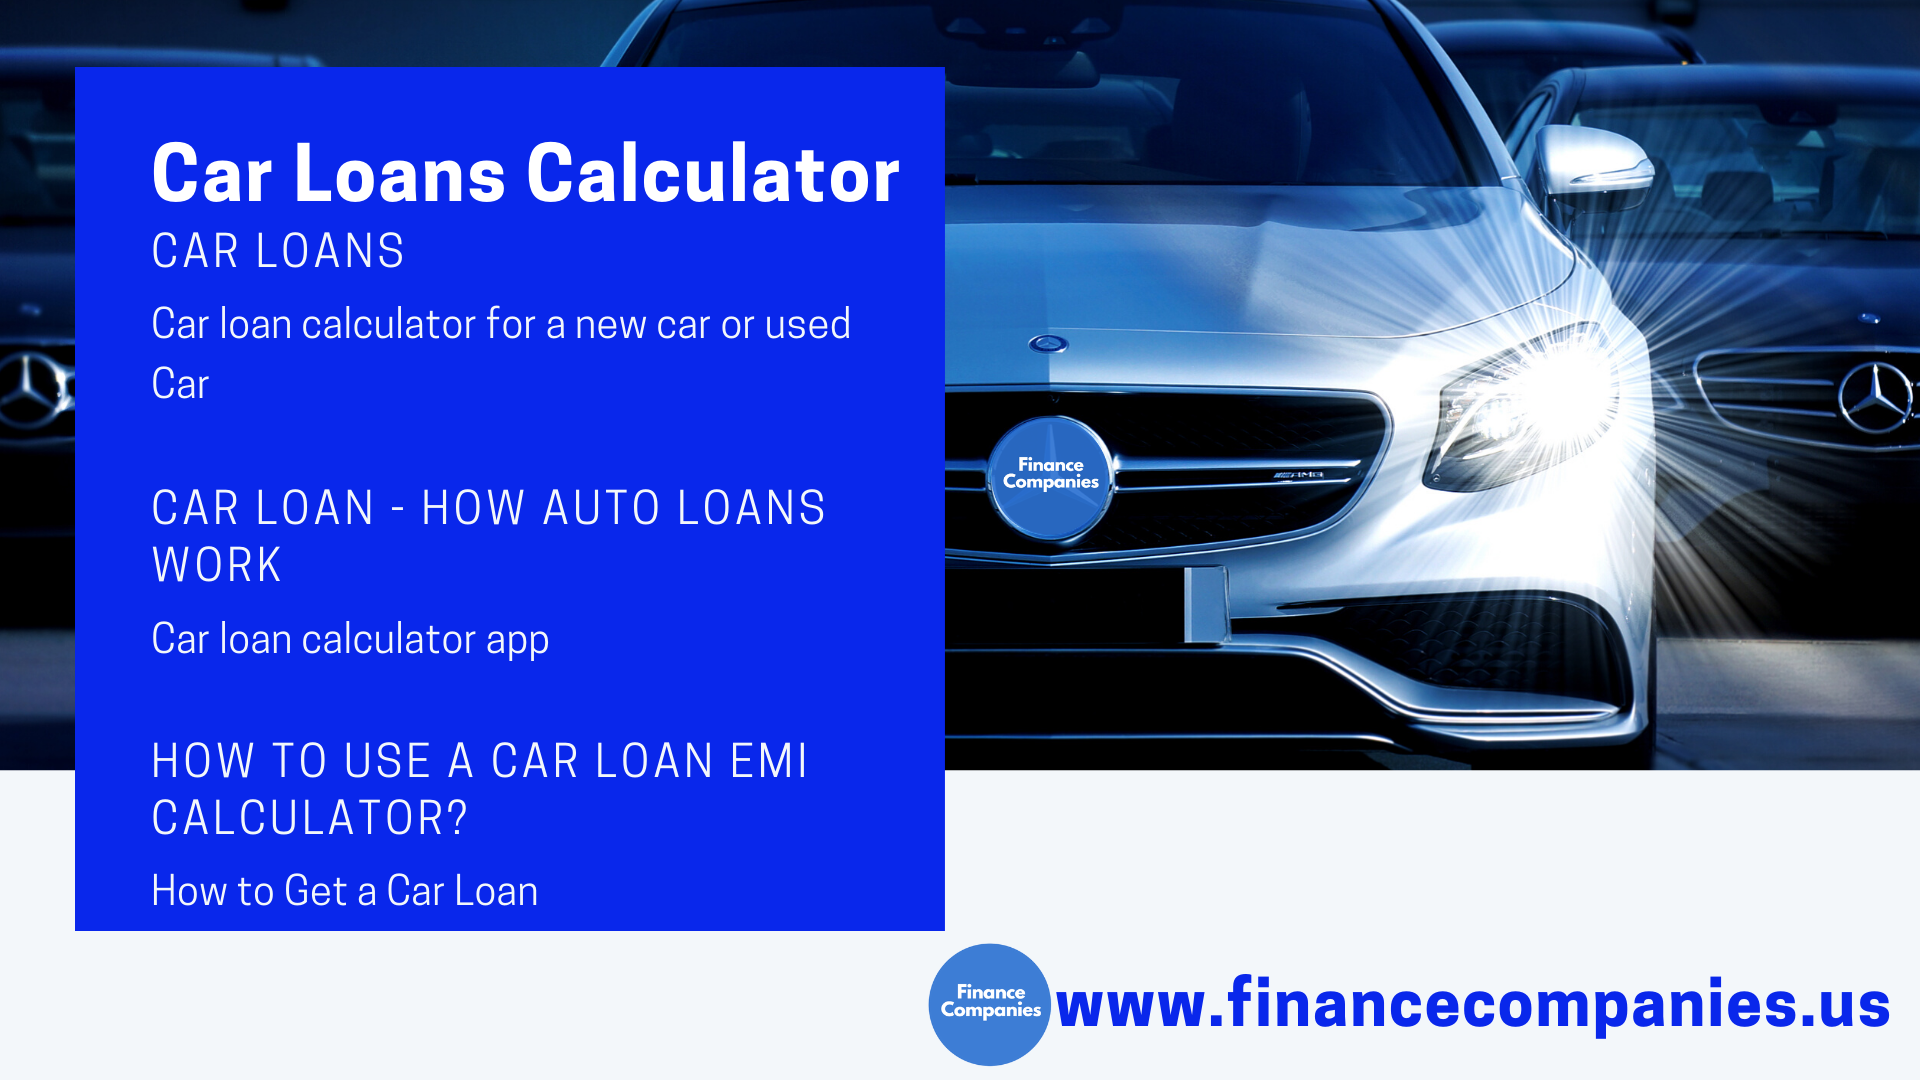 Car Loans Calculator A Guide To Auto Loans Financecompanies